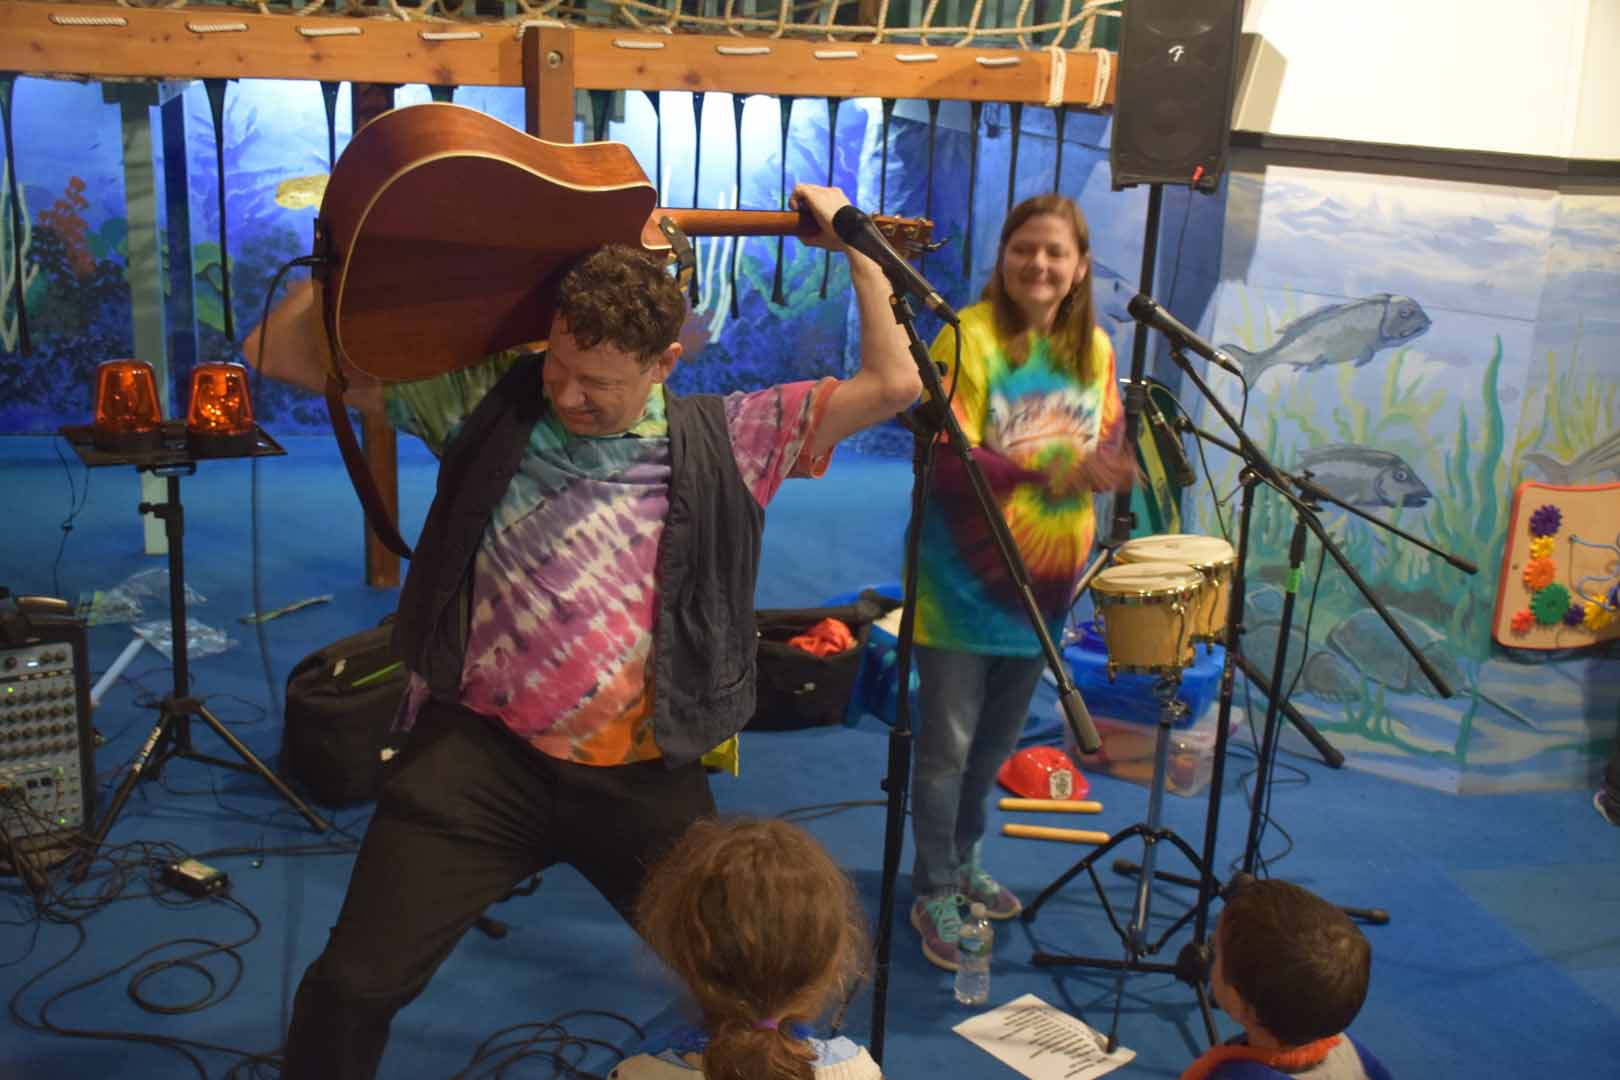 Jason Didner and the Jungle Gym Jam acoustic duo. Jersey Jason has his guitar behind his head as Awesome Amy keeps the beat.